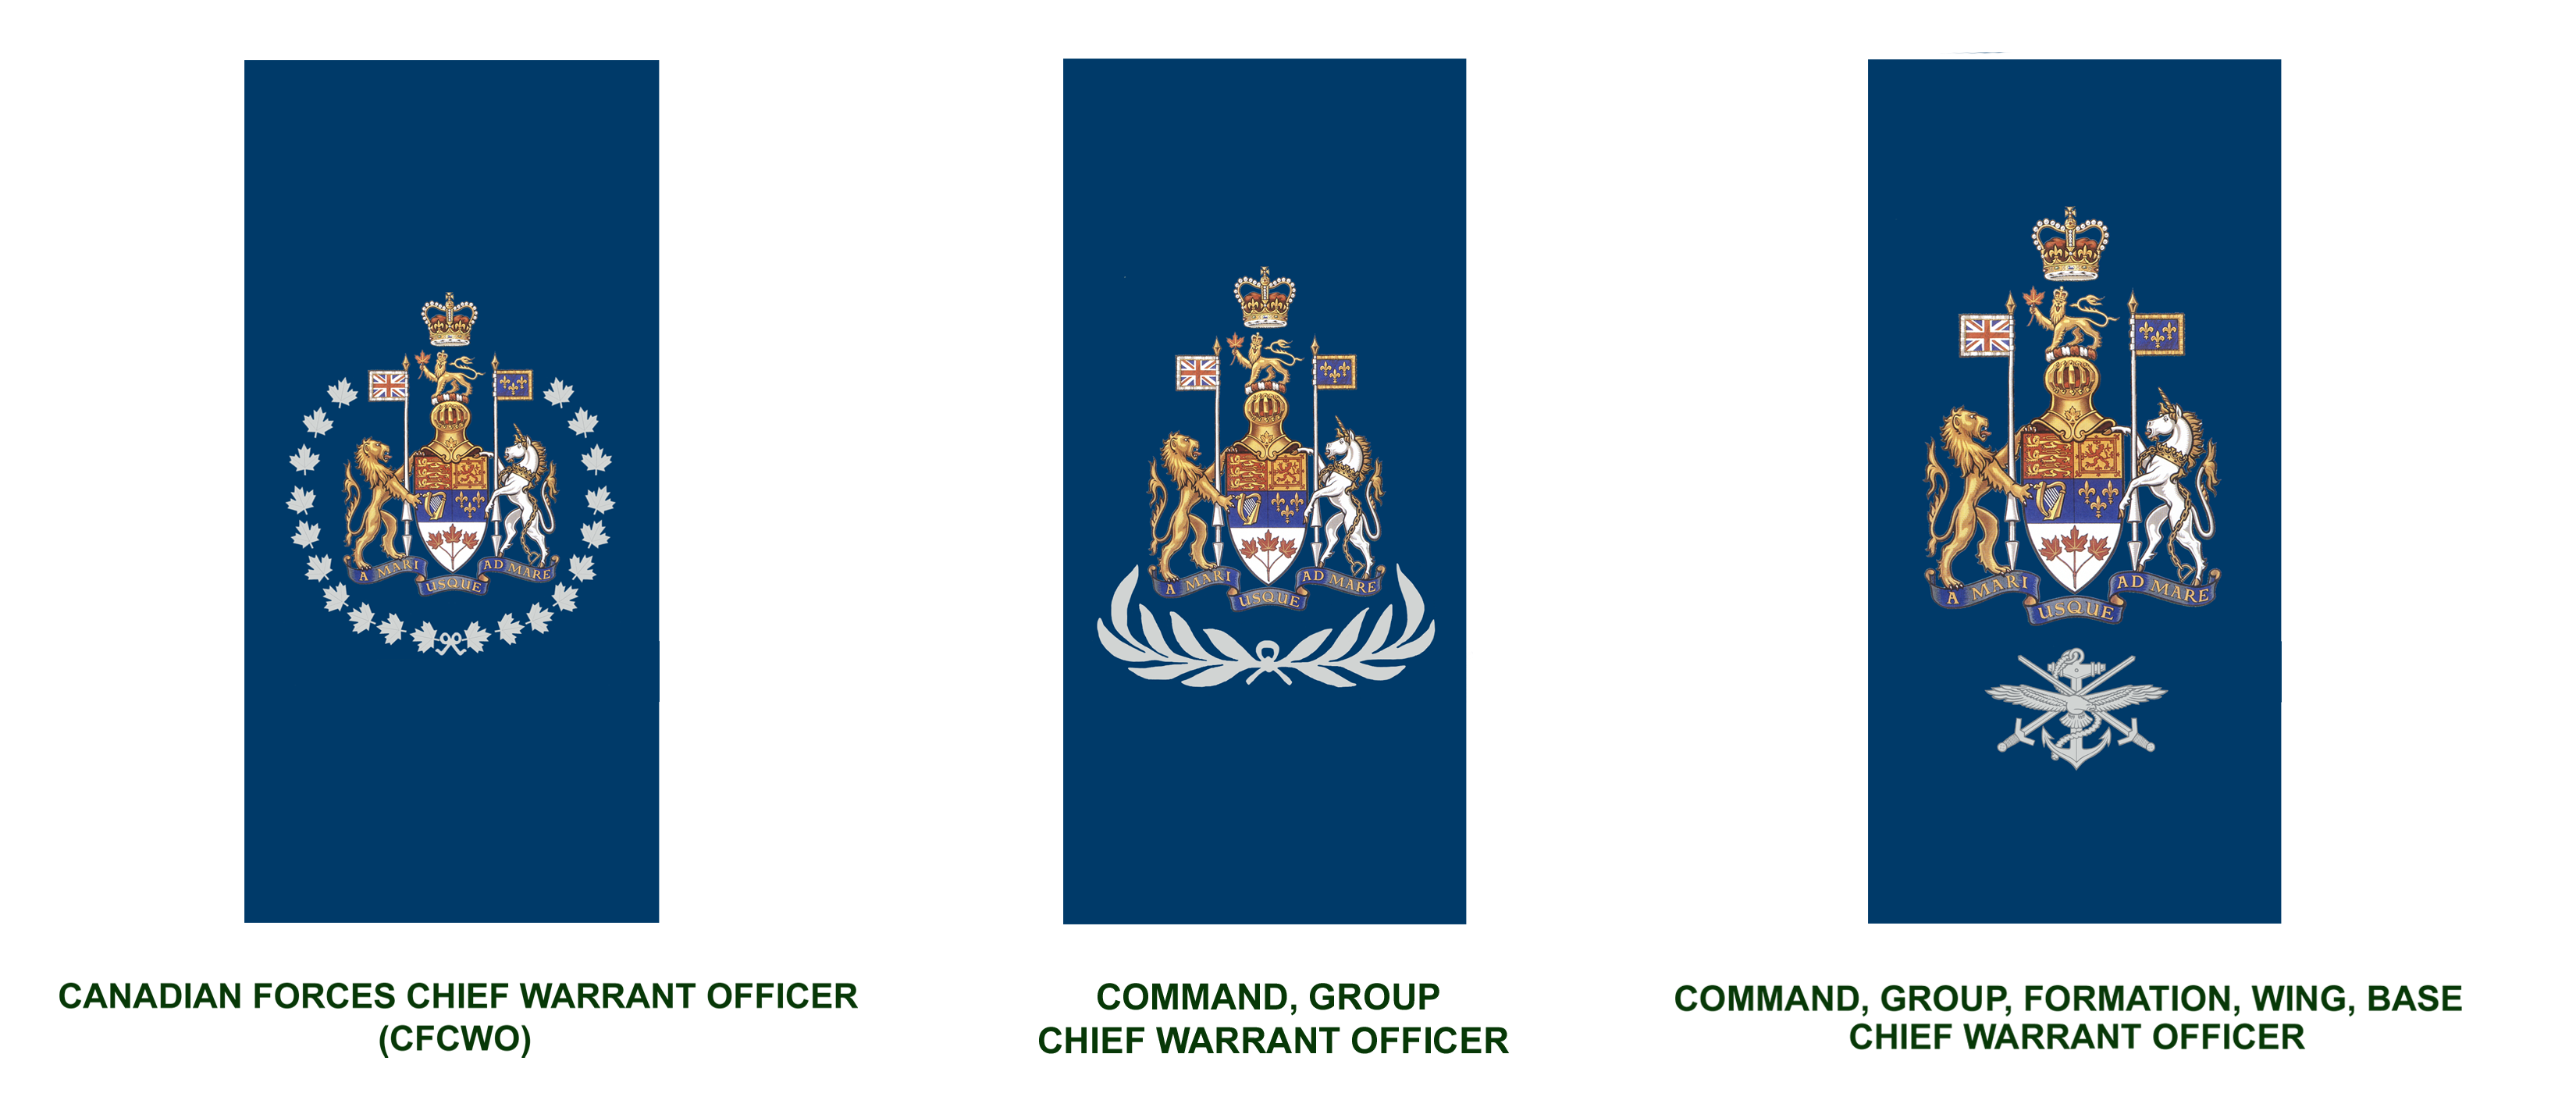 Senior Appointments (in descending order): Canadian Forces Chief Warrant Officer, Command, Group Chief Warrant Officer, and Command, Group, Formation, Wing, Base Chief Warrant Officer